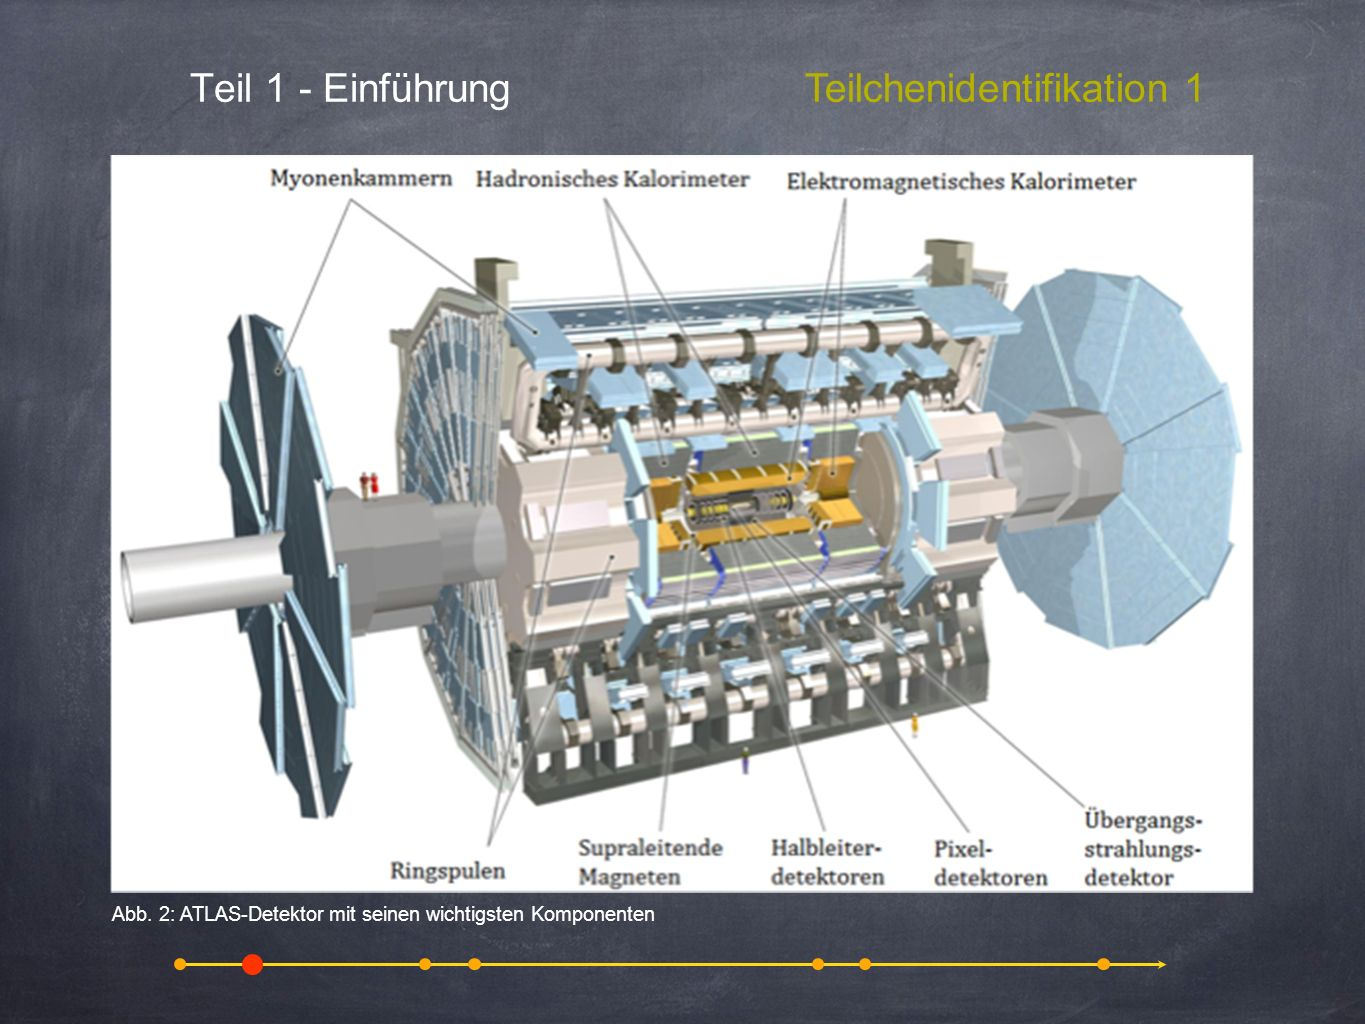 Teil 1 - EinführungPhysik 3 Produktion - W-Boson animation, video, pictures of annihilation and pair production from cosmic rays Abb.